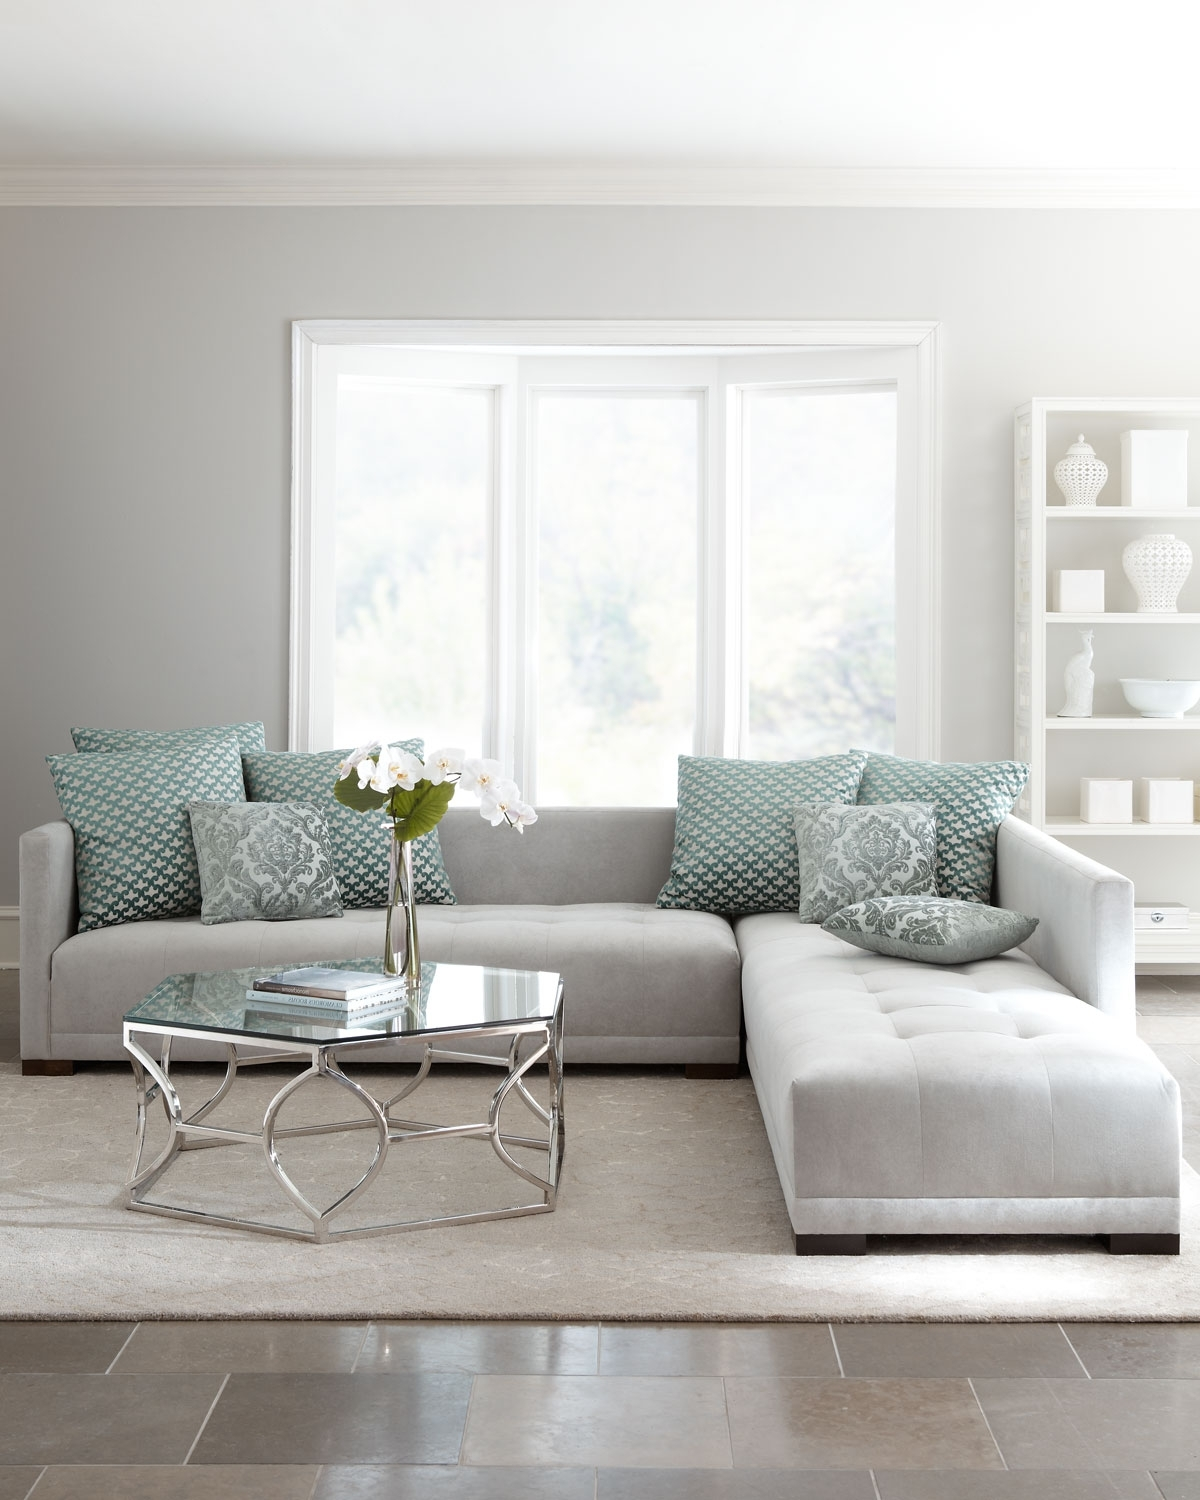 7 Ways To Use Duck Egg Blue To Spruce Up Your Living Room Decor Duck Egg Living Room Decor